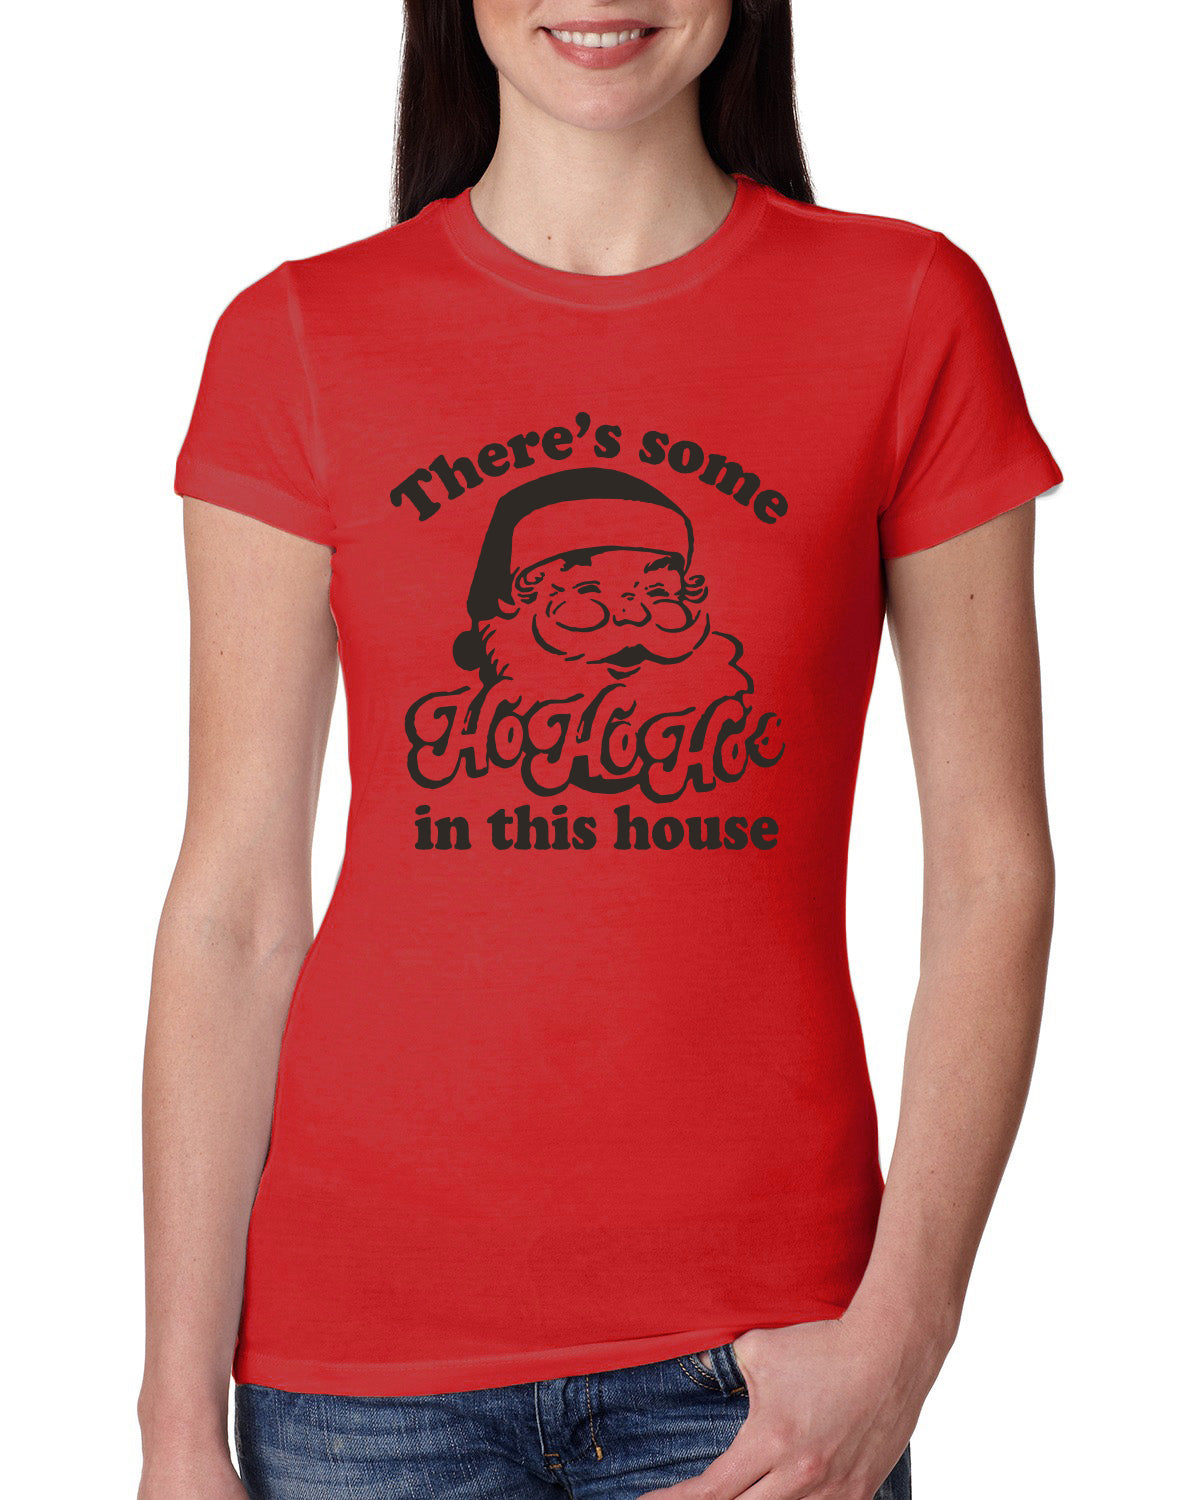 Theres some Ho Ho Ho in this House Ugly Christmas Sweater Womens Slim Fit Junior Tee